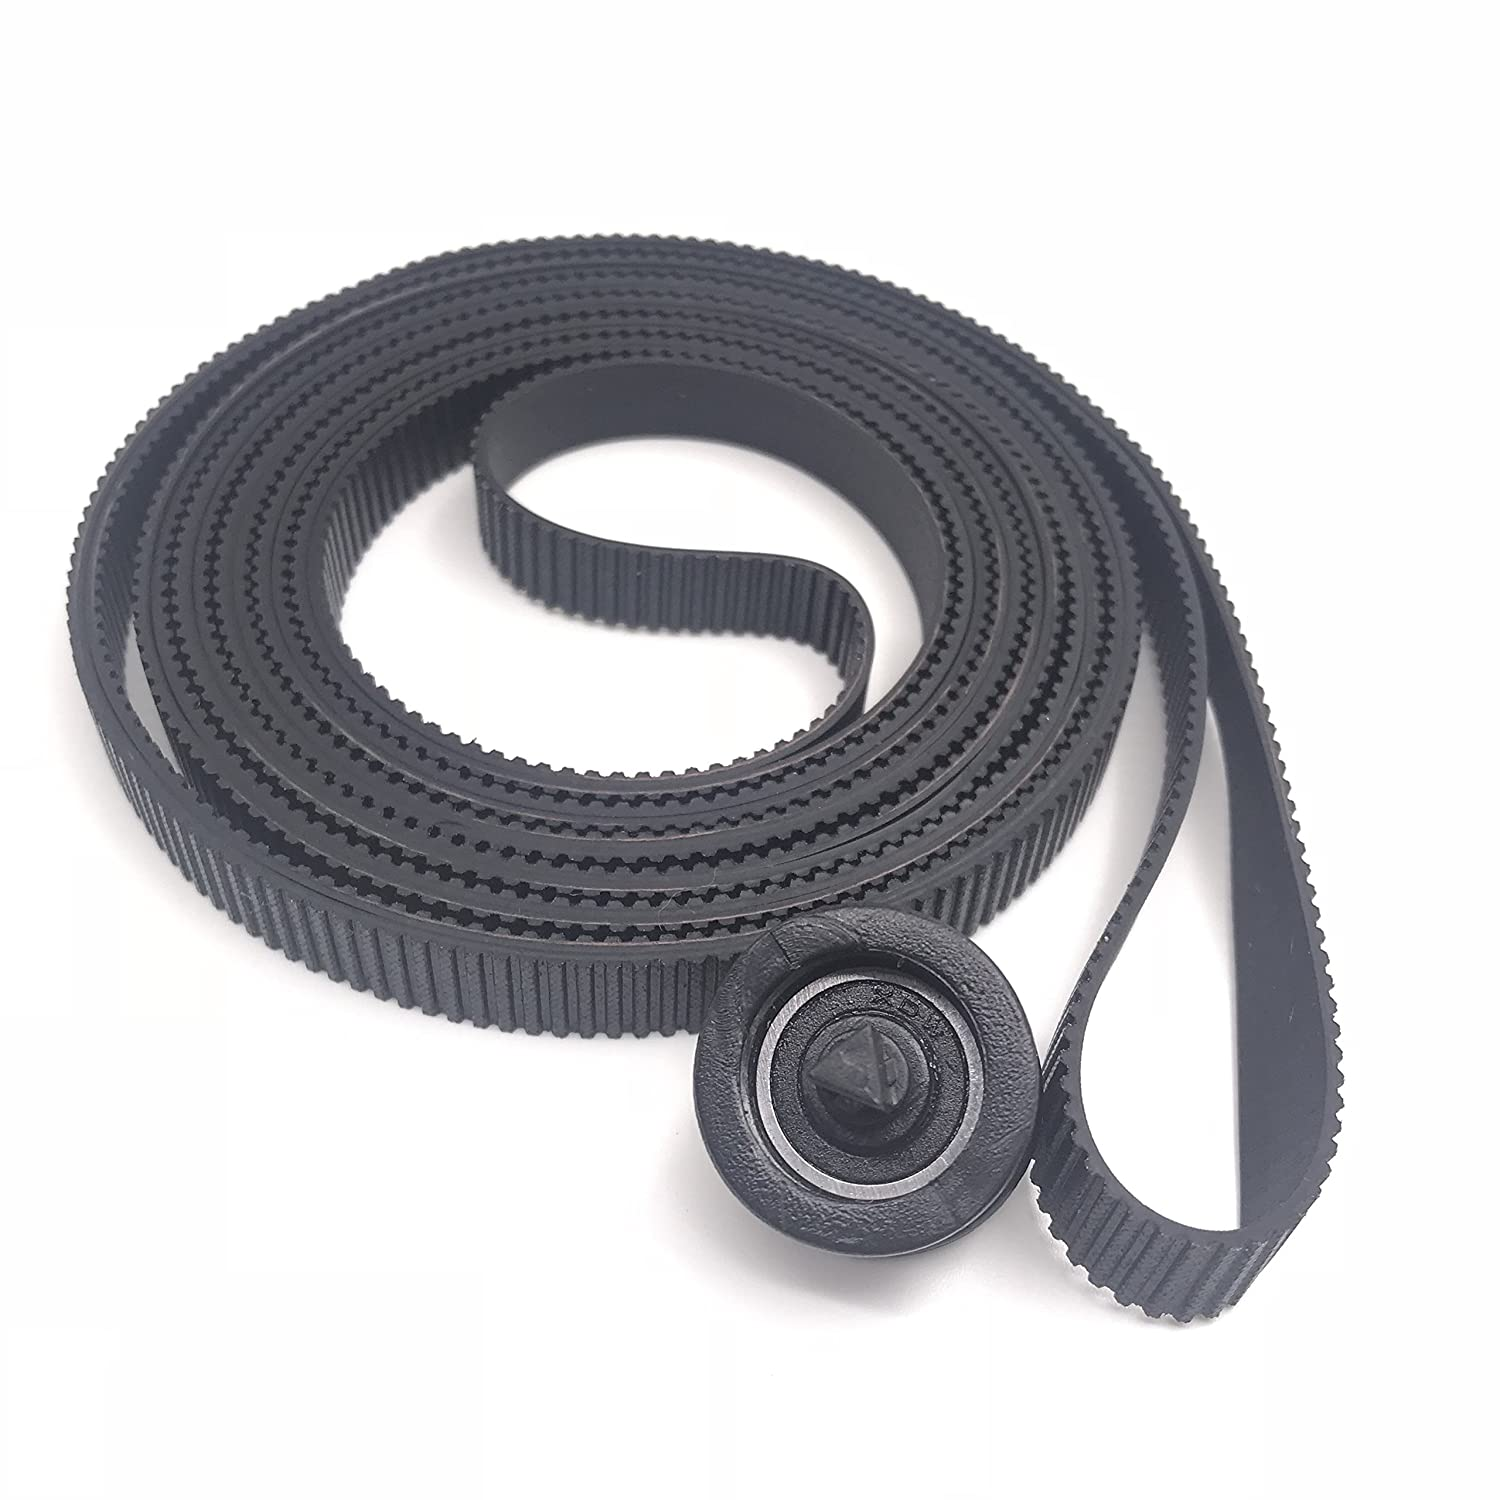 OKLILI C7770-60014 Carriage Belt 42 (42 inch) B0 Size with Pulley for HP DesignJet 500 500PS 800 800PS 510 510PS 815 CC800PS 820 815MFP 820MFP